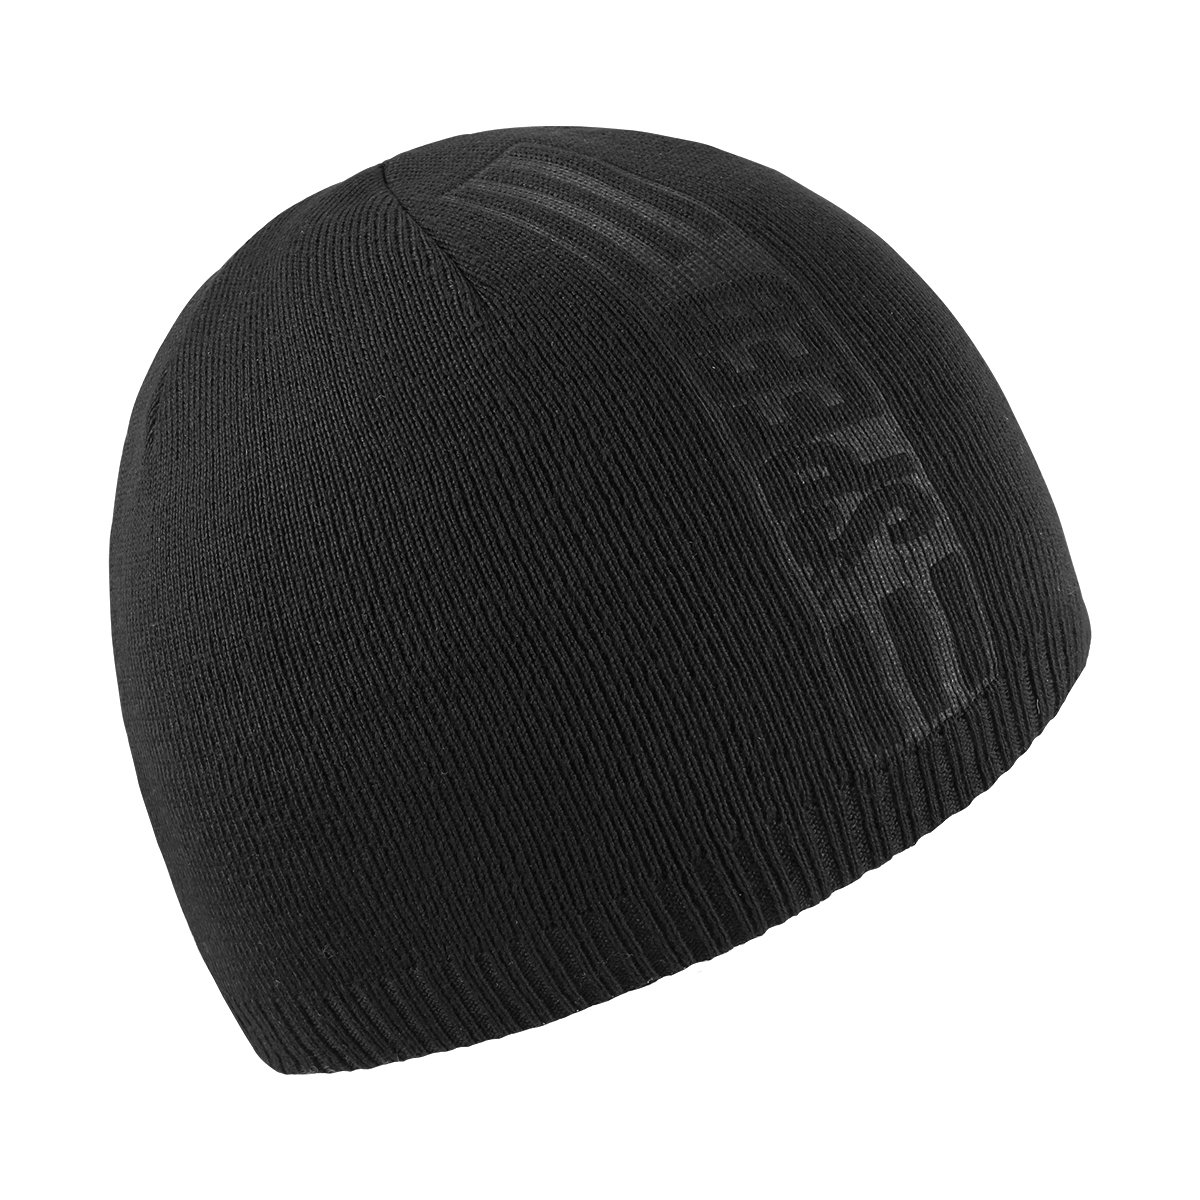 52ee80c9987 ... Winter Hats Wool Warm Plain Skull Cuff Toboggan Knitting Watch Cap.  Wholesale Price 11.89. Bodvera is the Professional company serving men and  women who ...